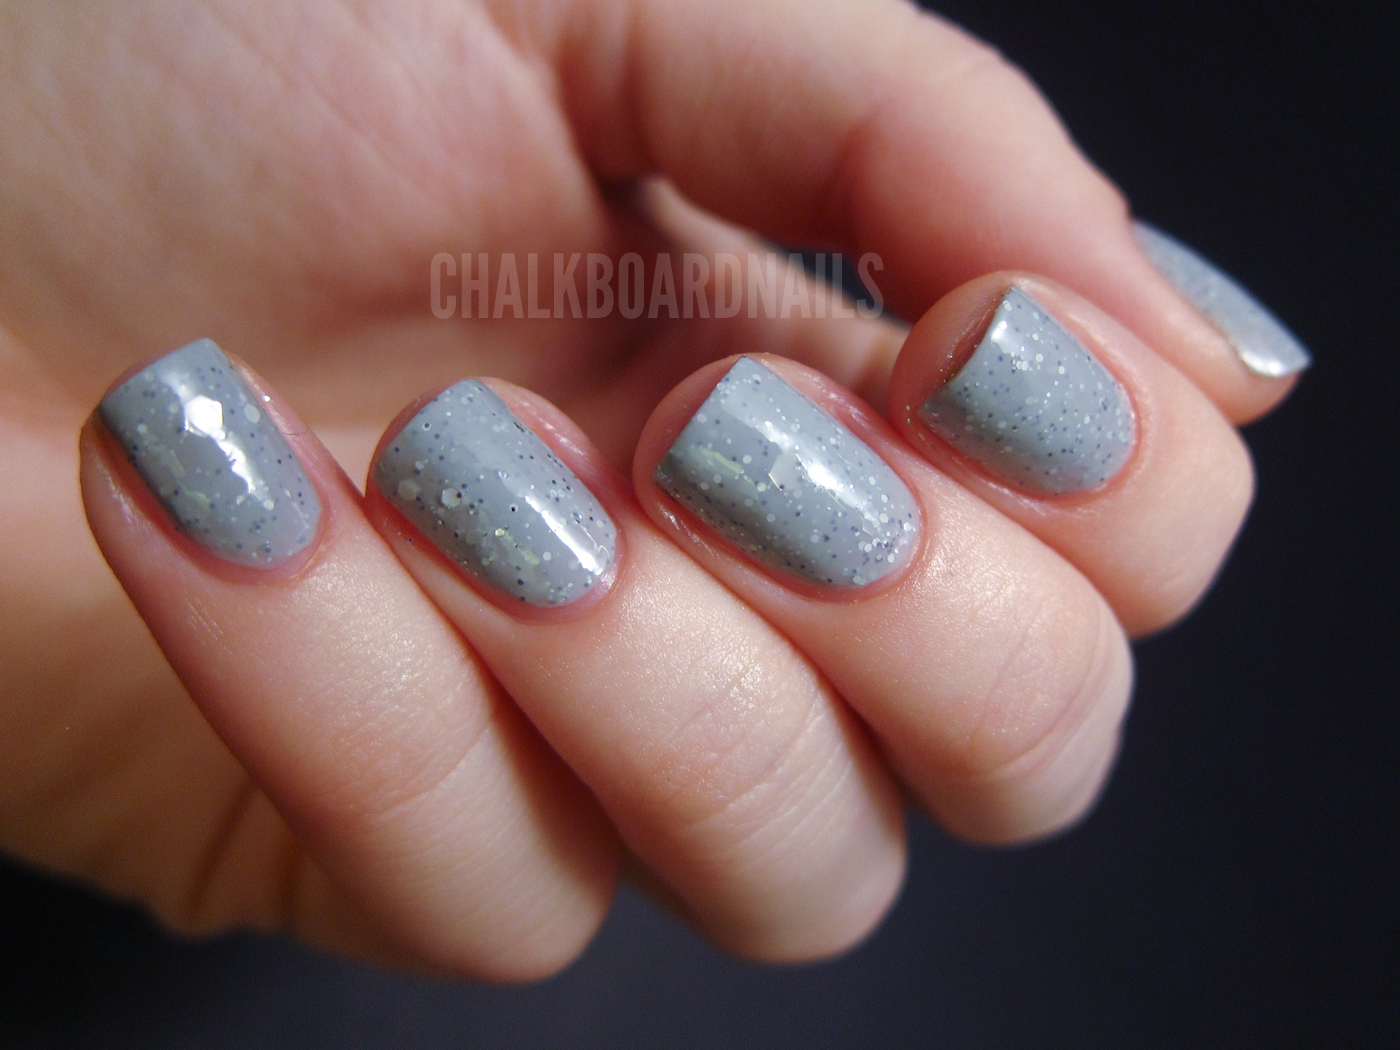 Nerd Lacquer Don\'t Blink | Chalkboard Nails | Nail Art Blog